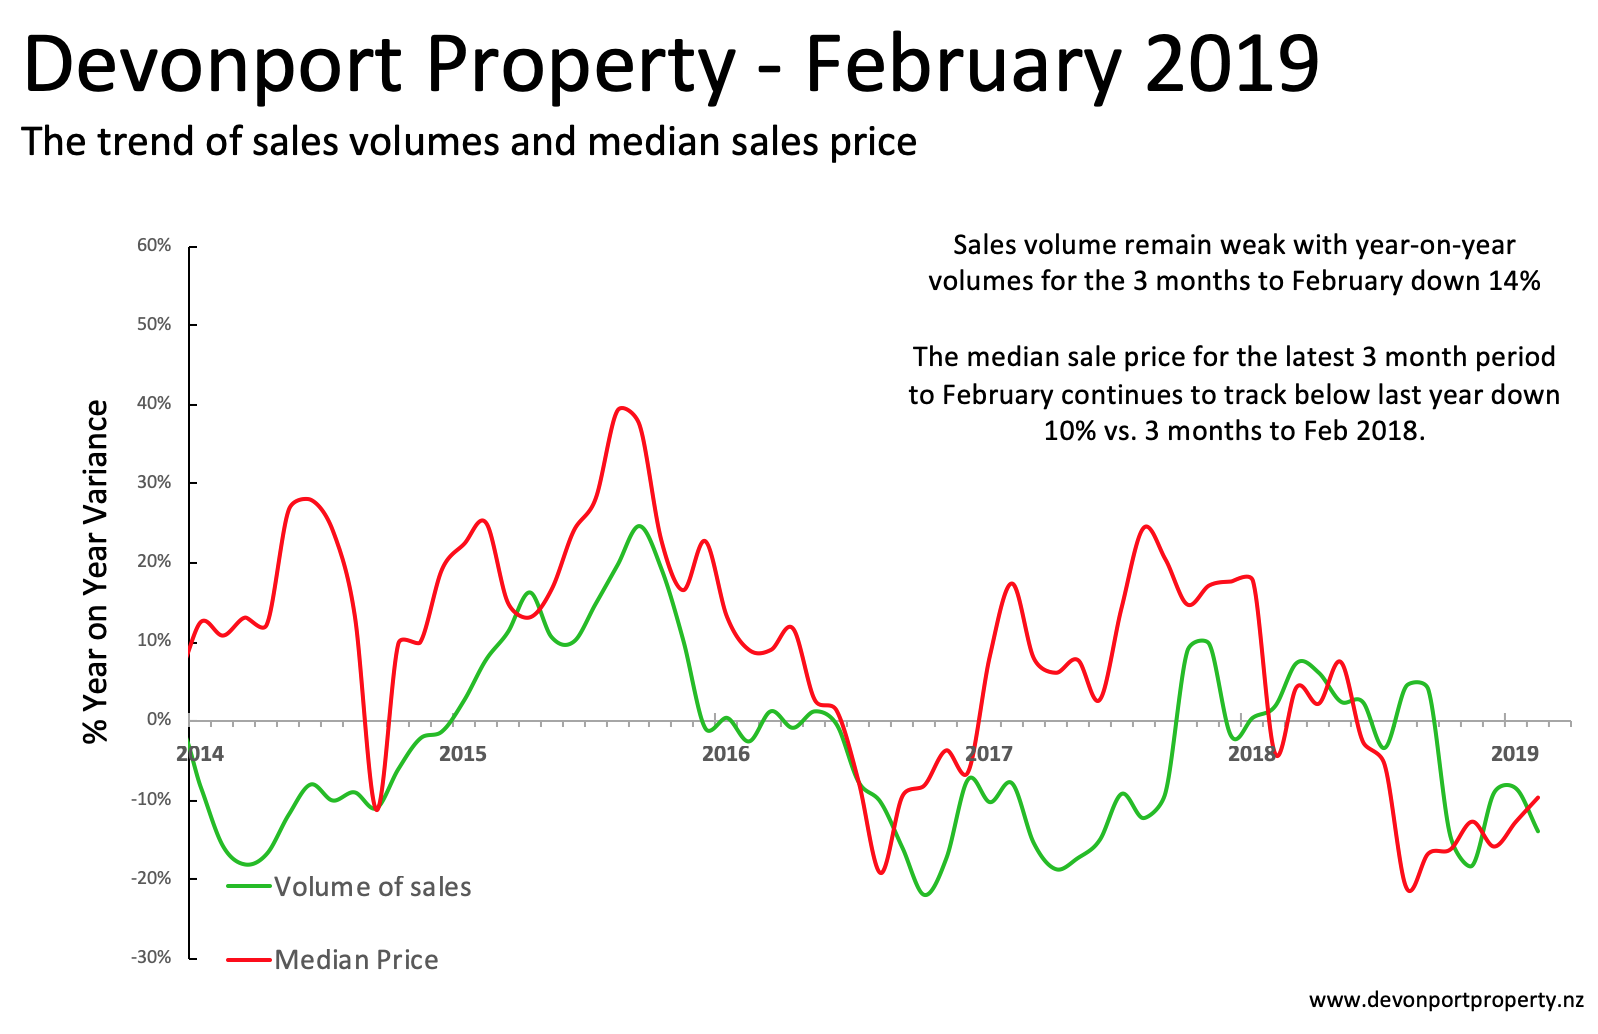 Devonport Property NZ Feb 2019 Total property sales and price variance 3MT.png